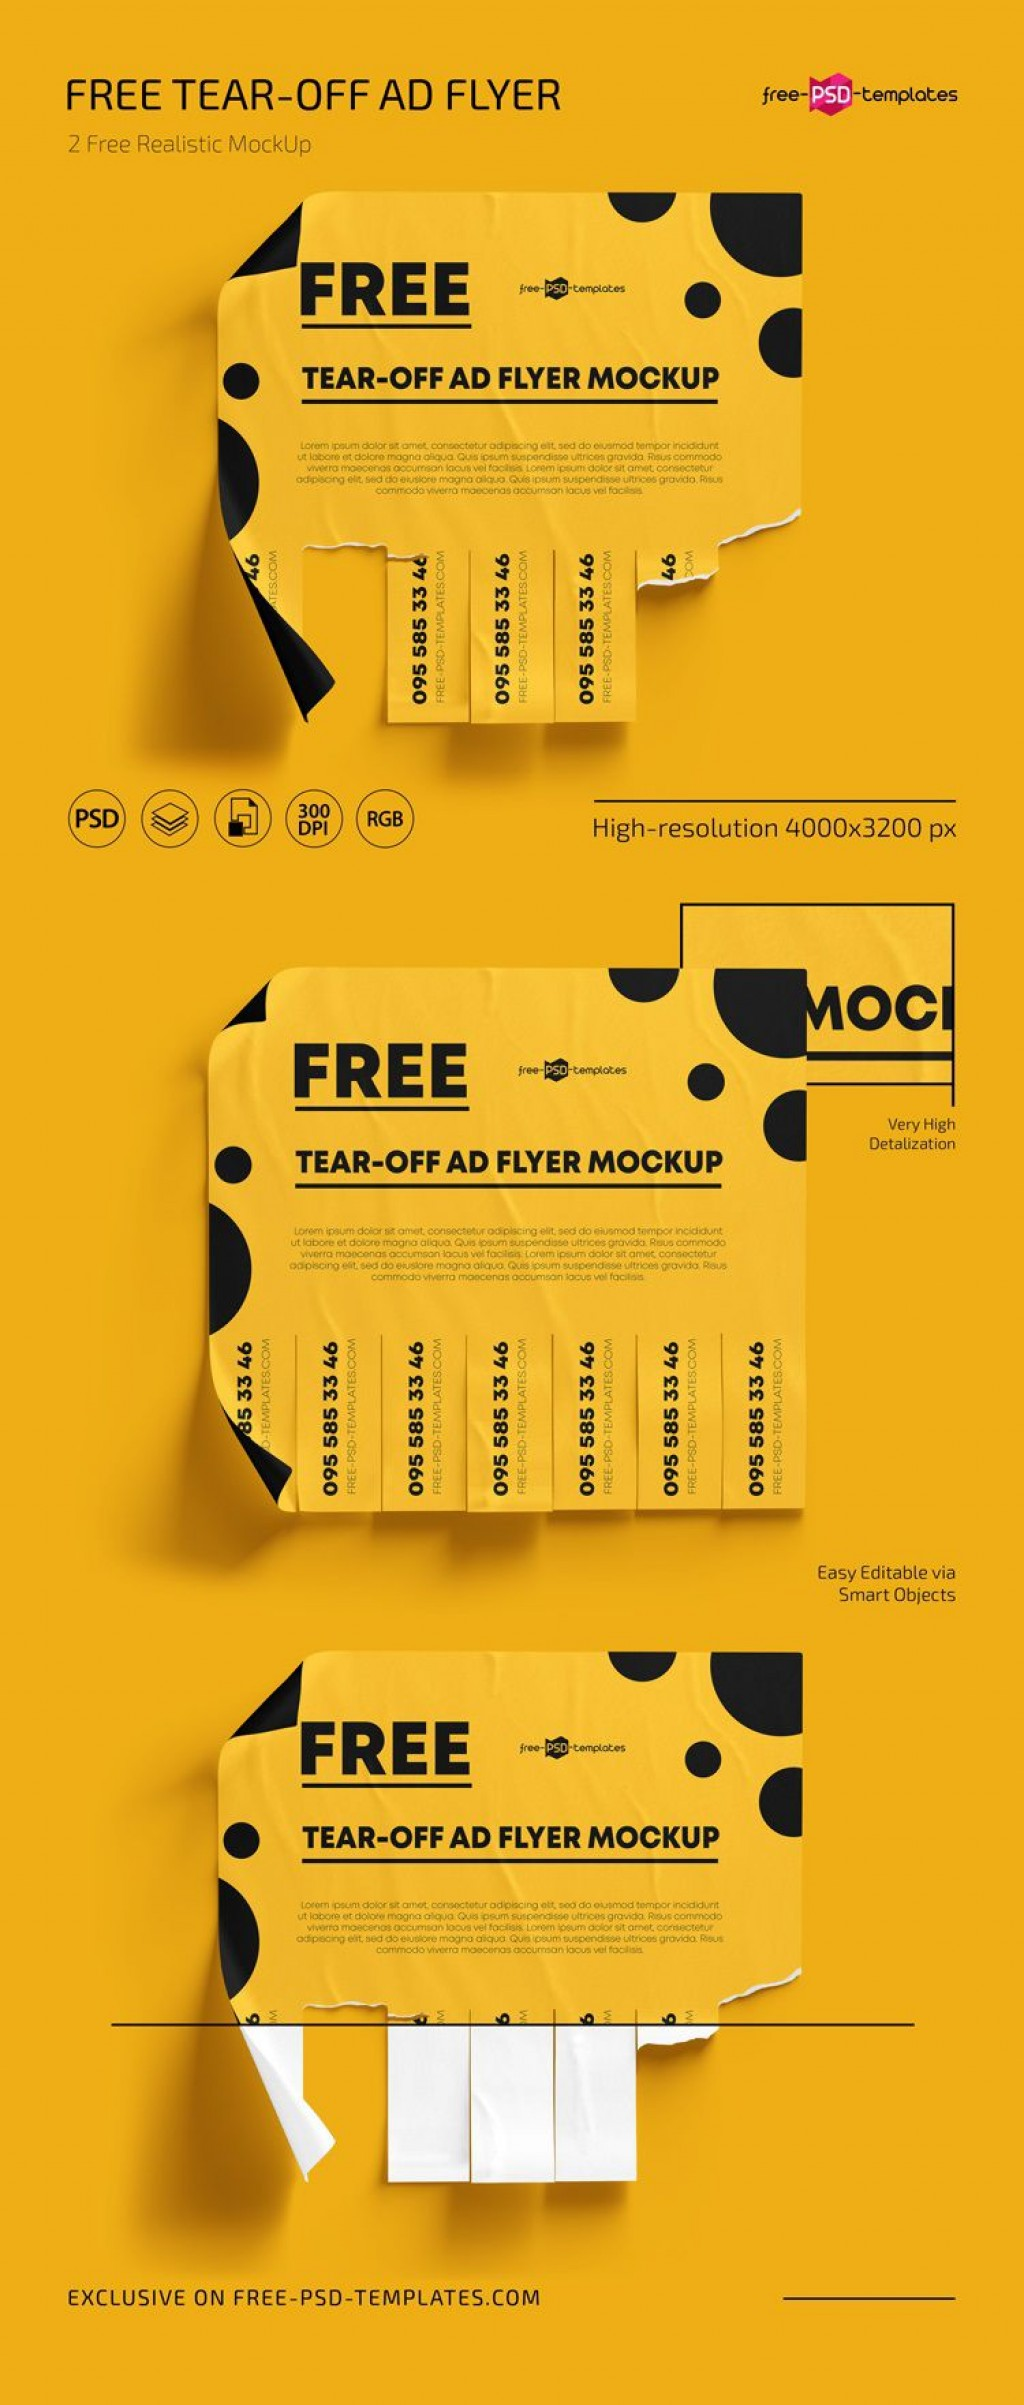 005 Unforgettable Free Tear Off Flyer Template High Resolution  Tear-off For Microsoft Word Printable With TabLarge